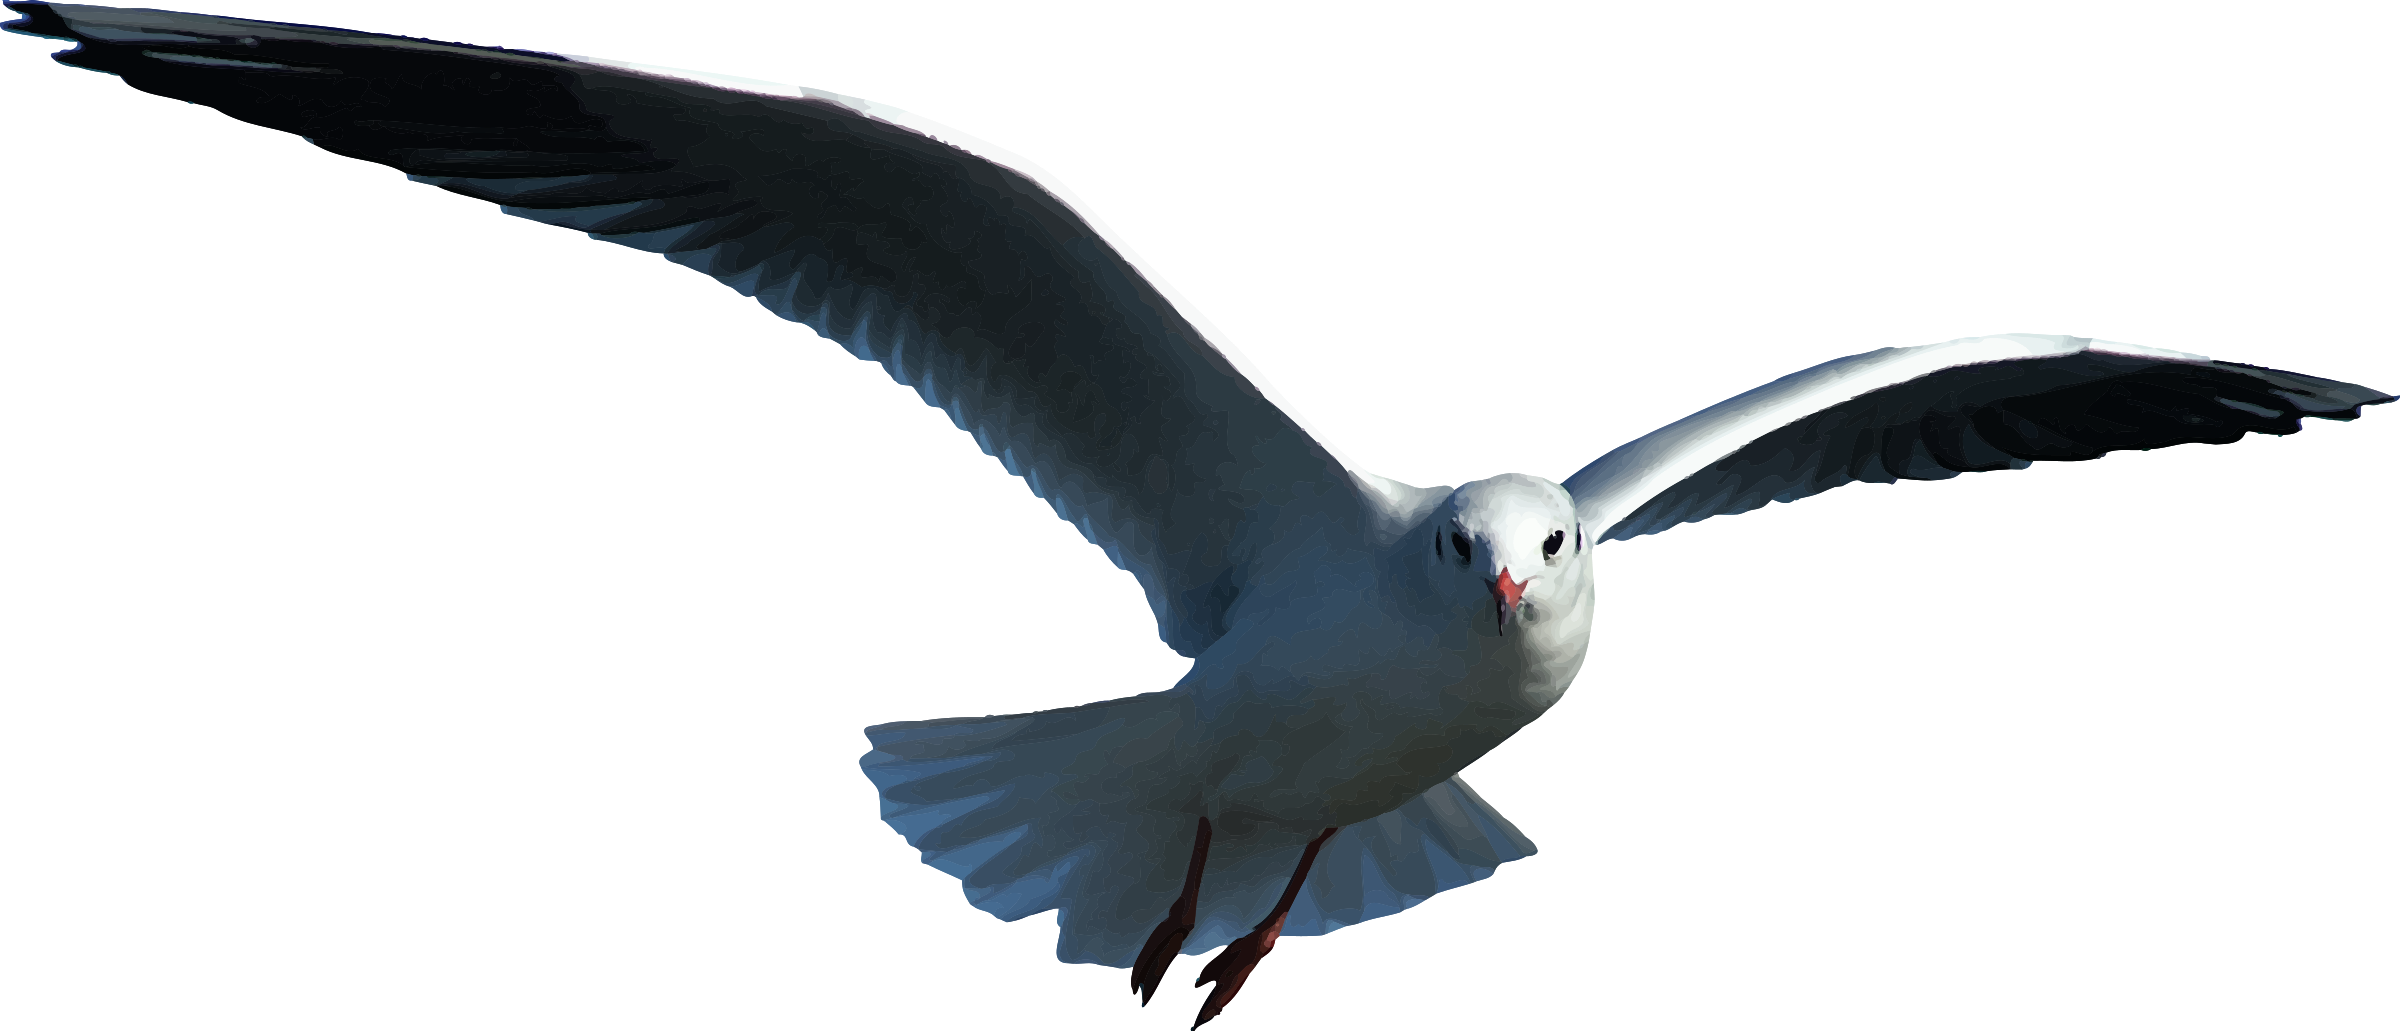 Seagull Flying Seagull Birds PNG Image and Clipart for